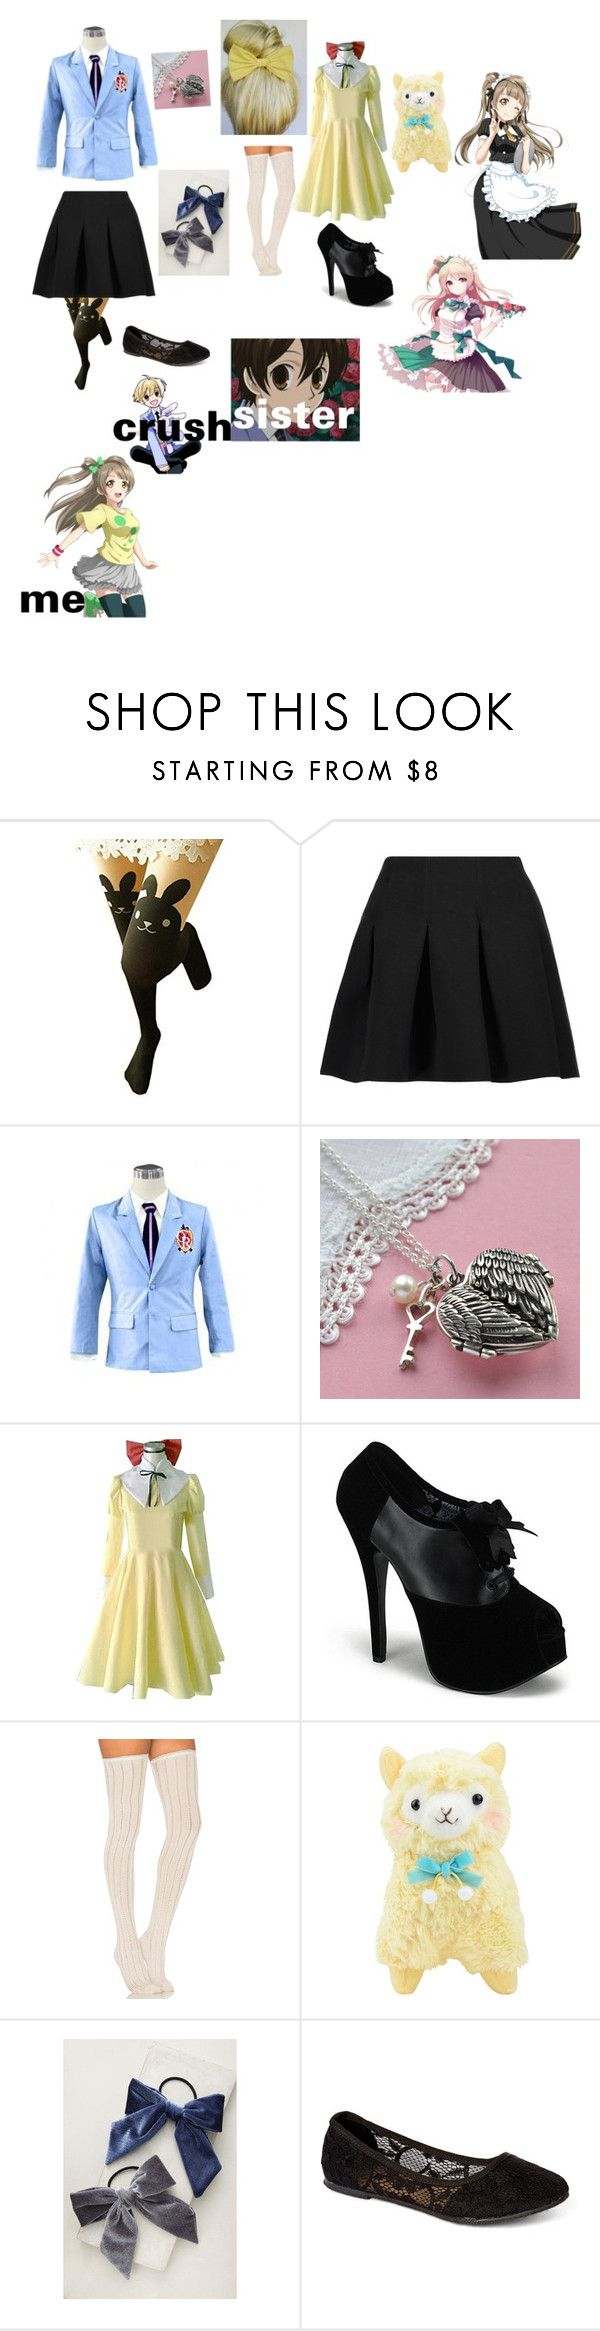 """""""outfits for first episode"""" by angelsdevildes ❤ liked on Polyvore featuring T By Alexander Wang, Martha Jackson, Free People, Anthropologie and Com Fancy"""